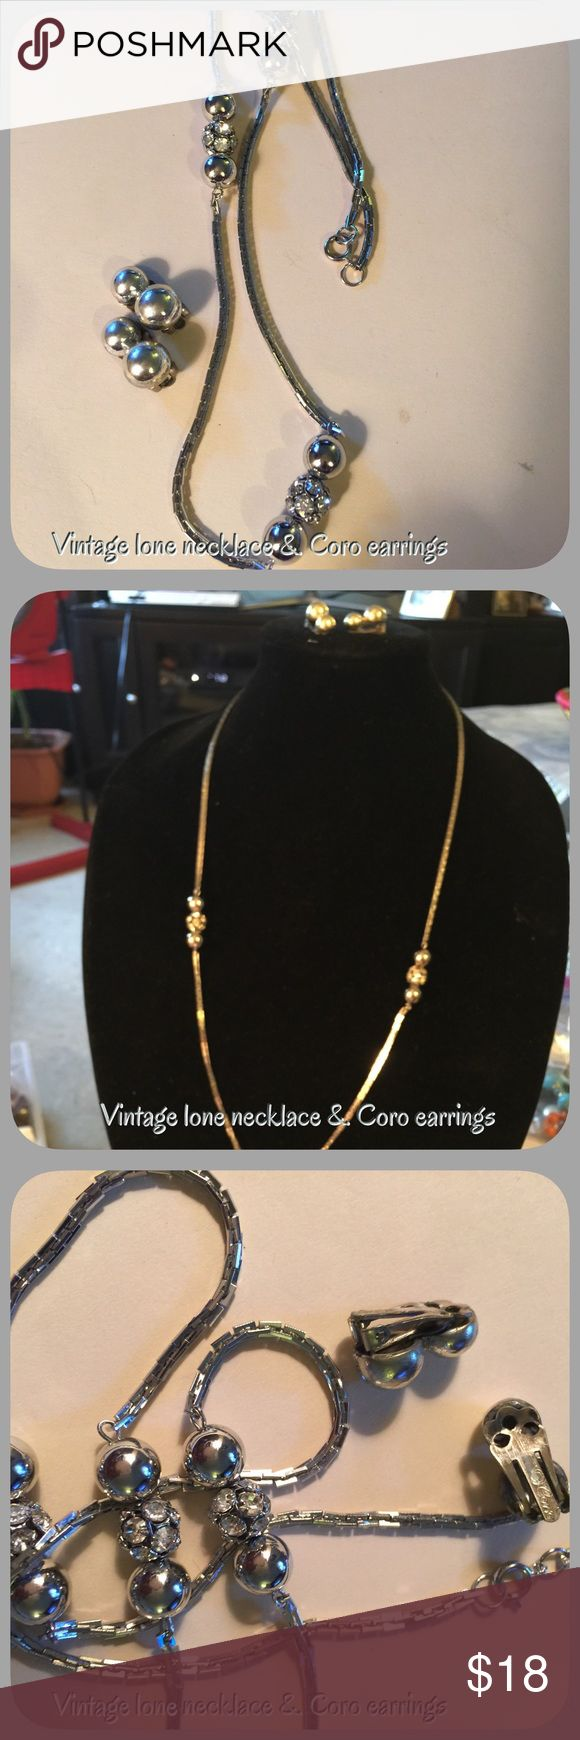 Vintage long silver tone necklace & Coro earrST#22 Vintage long necklace no hallmark, & Coro earrings hallmark, beautiful set I put together Vintage Coro Jewelry